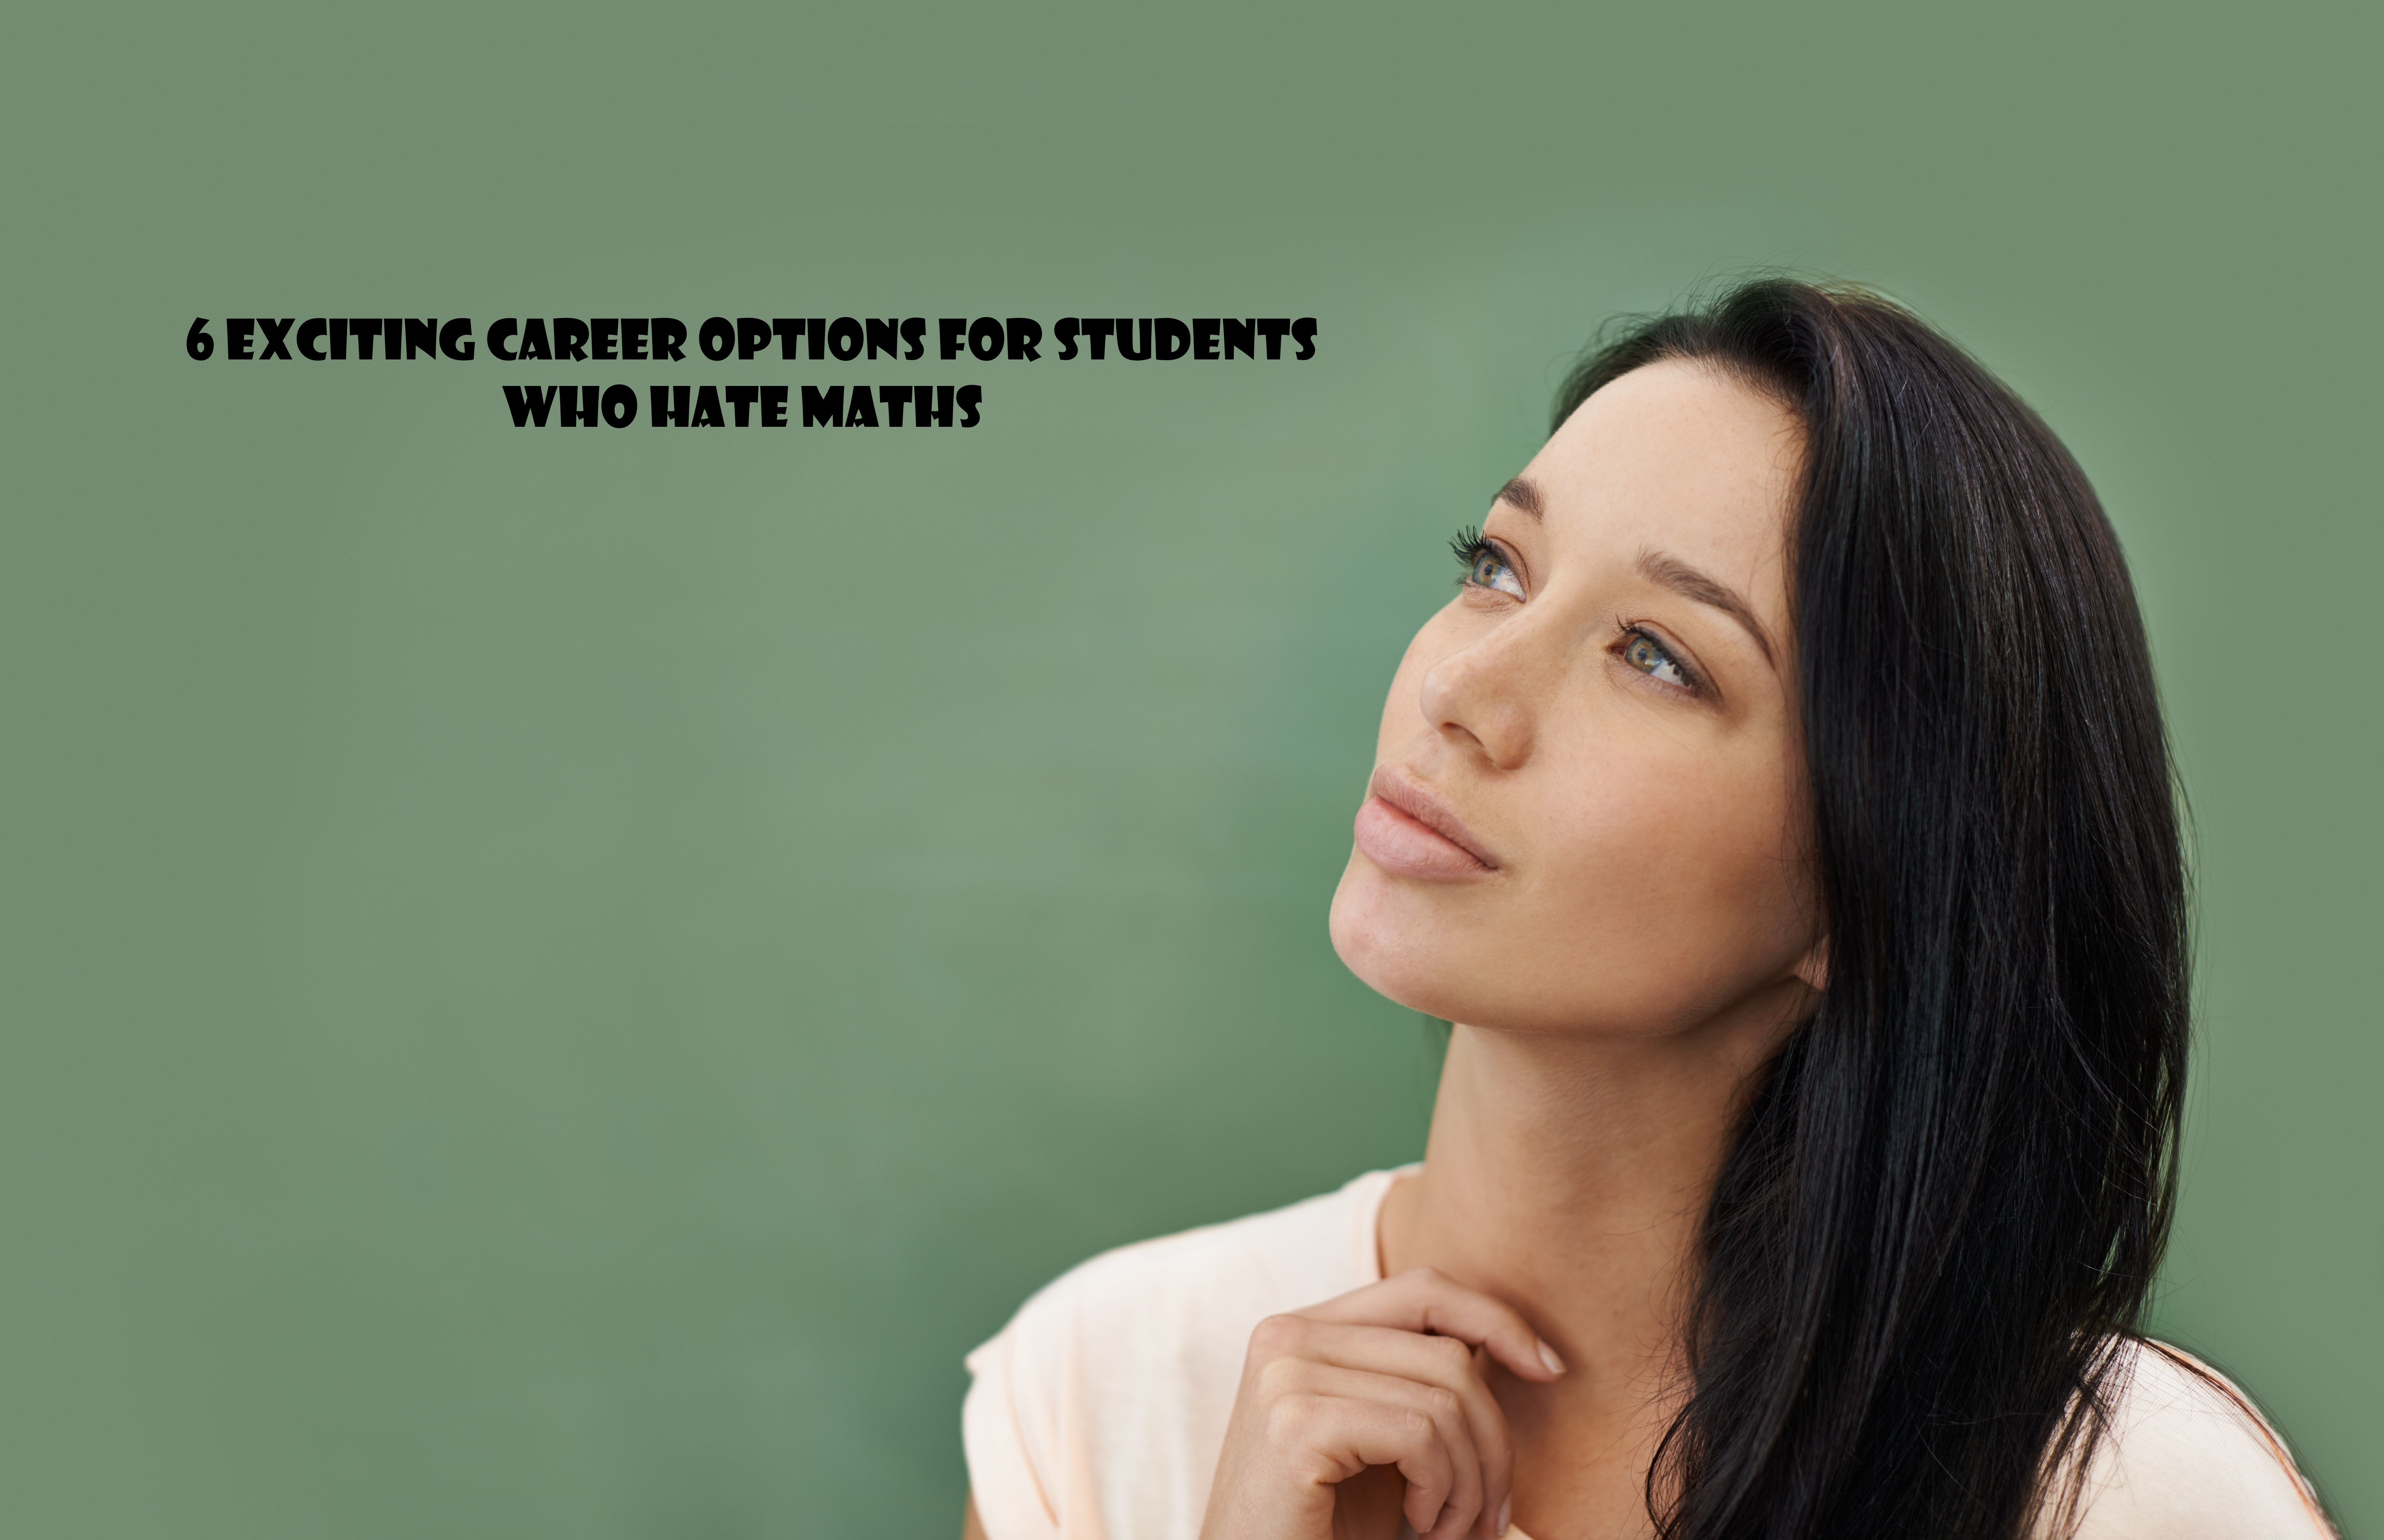 Career Options for Students who Hate Maths